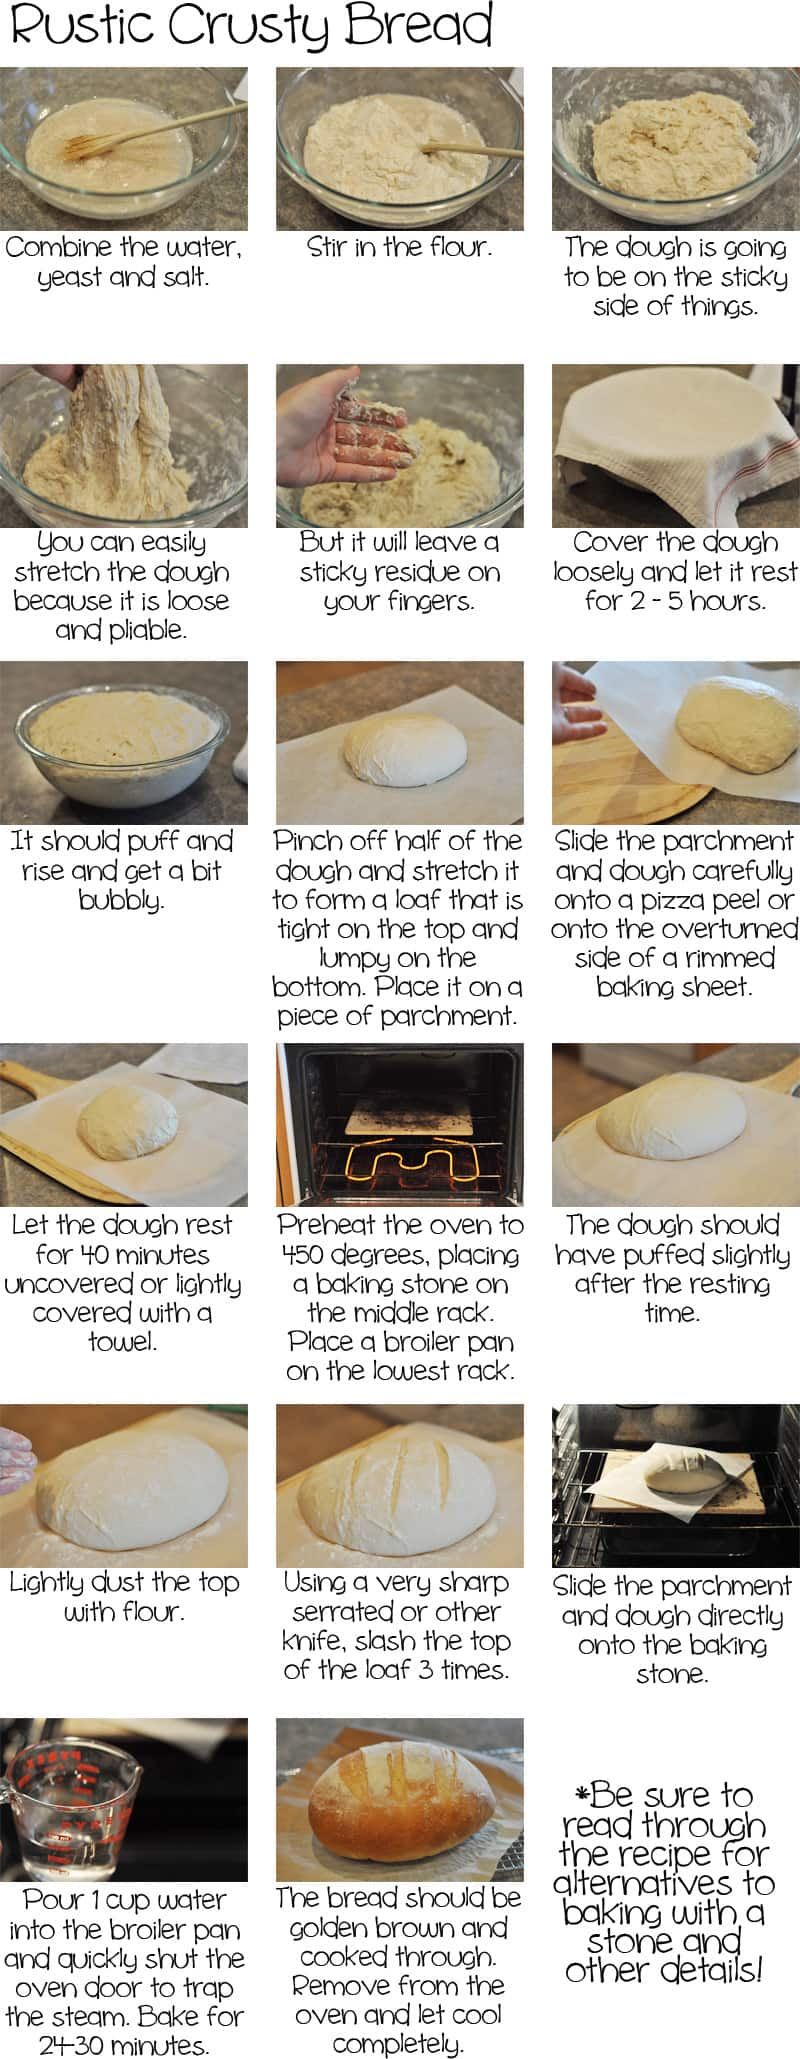 A how-to rustic bread tutorial with pictures and text for step-by-step instructions.